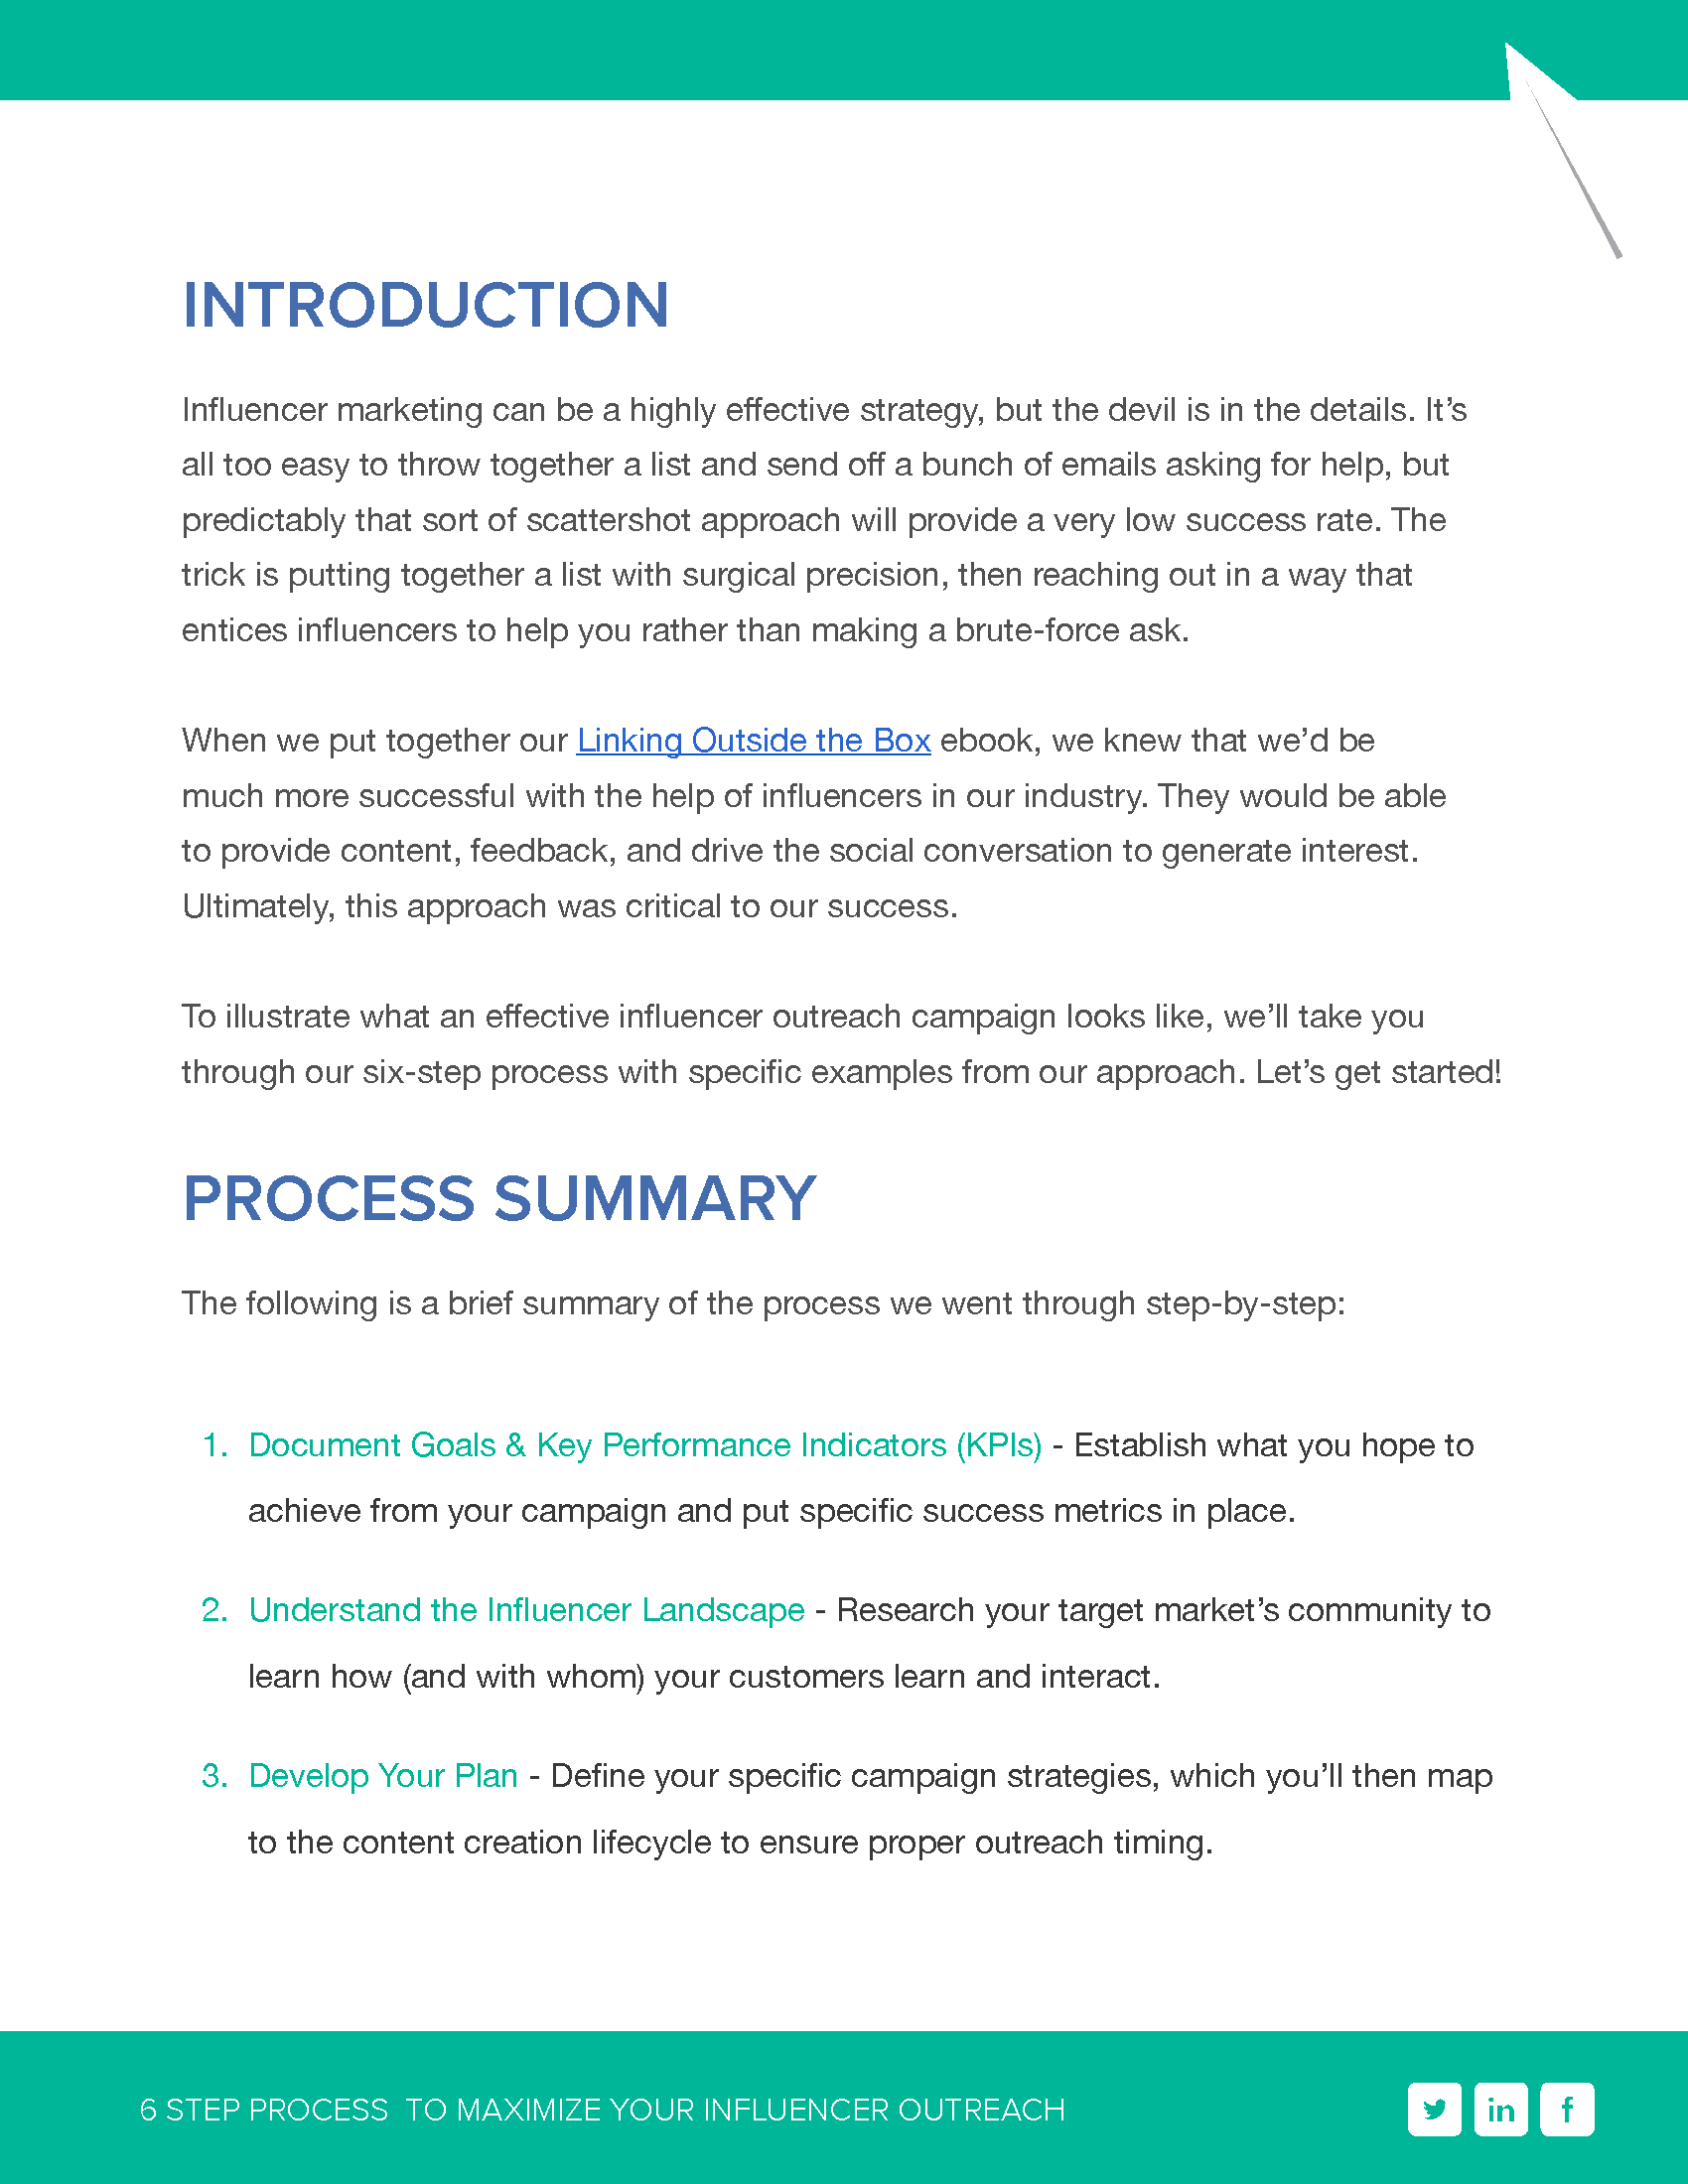 Preview_The_Six_Steps_Process_for_Maximizing_Influencer_Outreach_Page_3.png